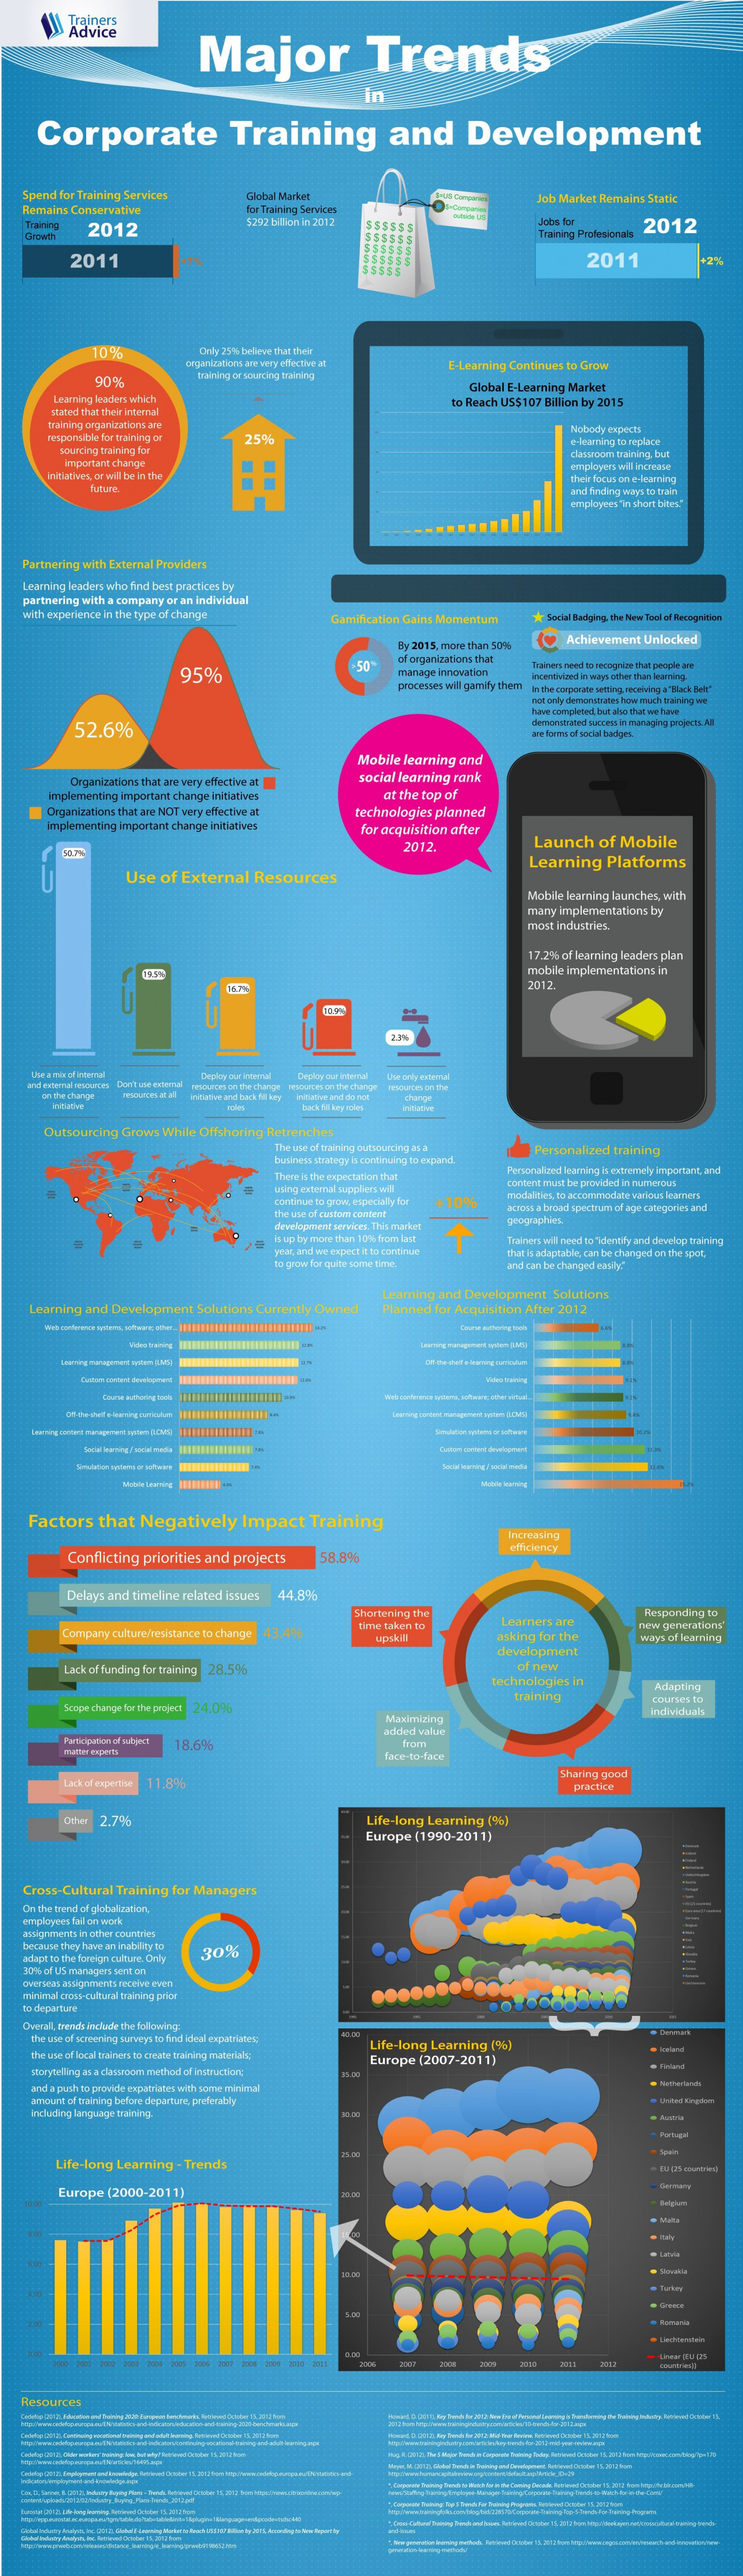 Major Trends in Corporate Training and Development Infographic